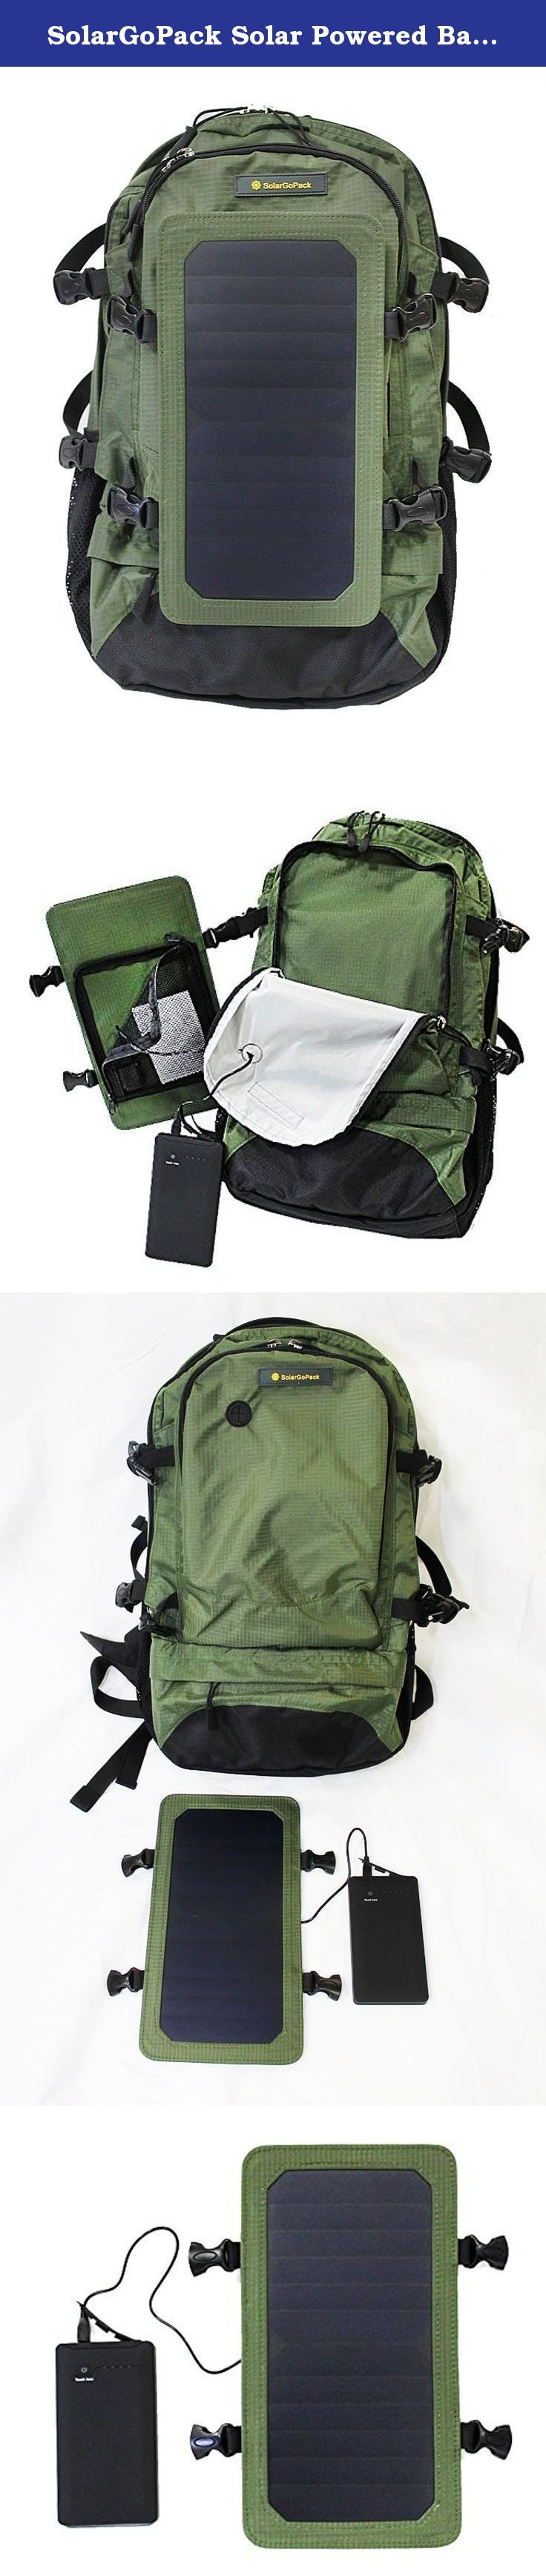 SolarGoPack Solar Powered Backpack / 7 Watt Solar Panel and 10K mAh Charging Battery Daypack / Phone and Electronic Device Power Charger Back Pack / Army Green. Enjoy free unlimited on-the-go power with this SolarGoPack solar panel backpack! This solar charging backpack uses the power of the sun to keep electronic devices such as smartphones, GPS units, tablets, E- readers, Bluetooth speakers, cameras, and more powered up and ready for use. This is the perfect choice for any outdoor or...